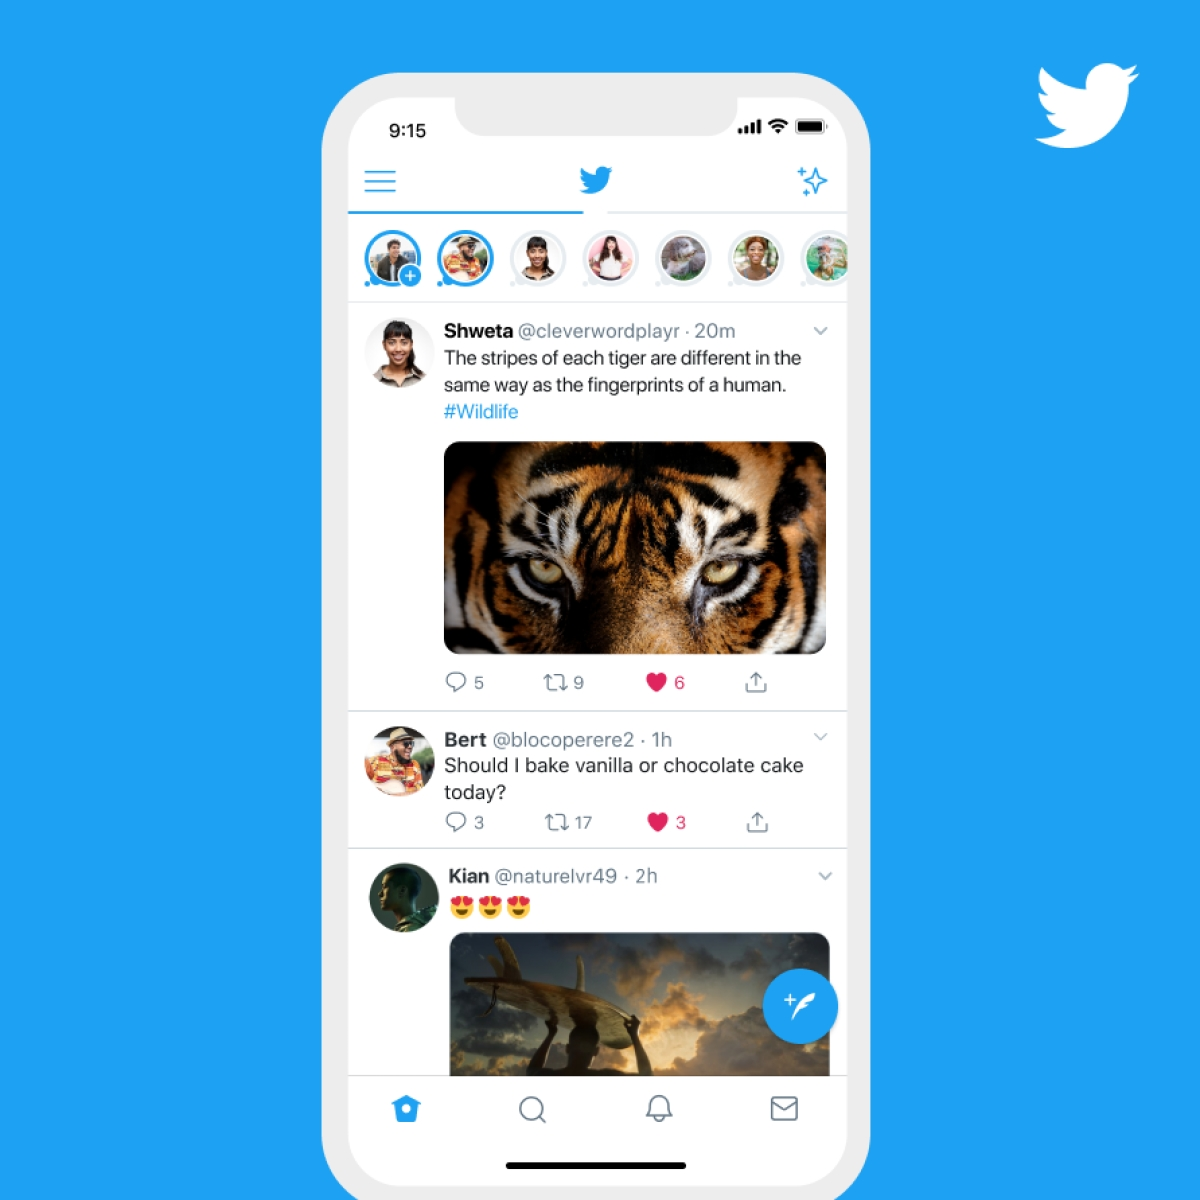 Twitter launches 'Fleets' in India, says it's a new way to converse on the platform